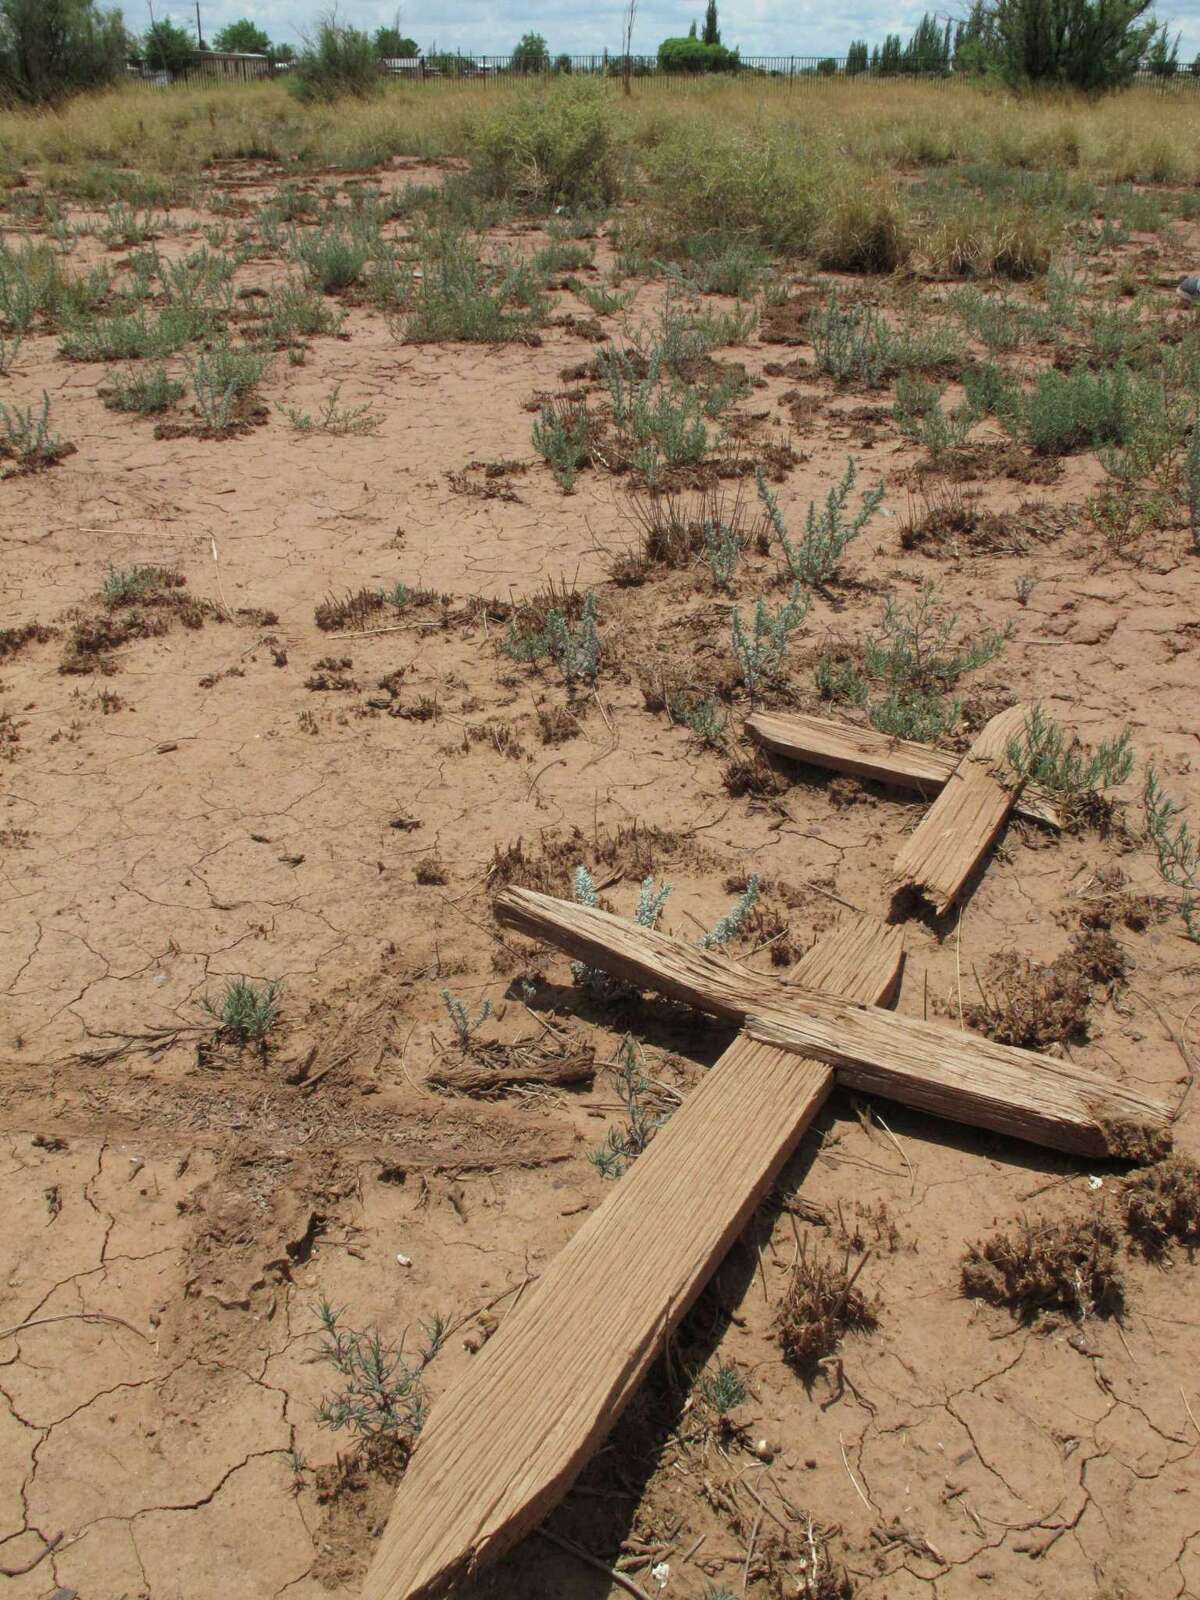 This July 9, 2014 photos shows wooden crosses lying in a dusty cemetery in Winslow, Arizona. Local historic preservation Commissioner Gail Sadler has made it her mission to unearth the identities of roughly 600 people buried there and help their descendants reconnect with a lost part of their history. (AP Photo/Felicia Fonseca)